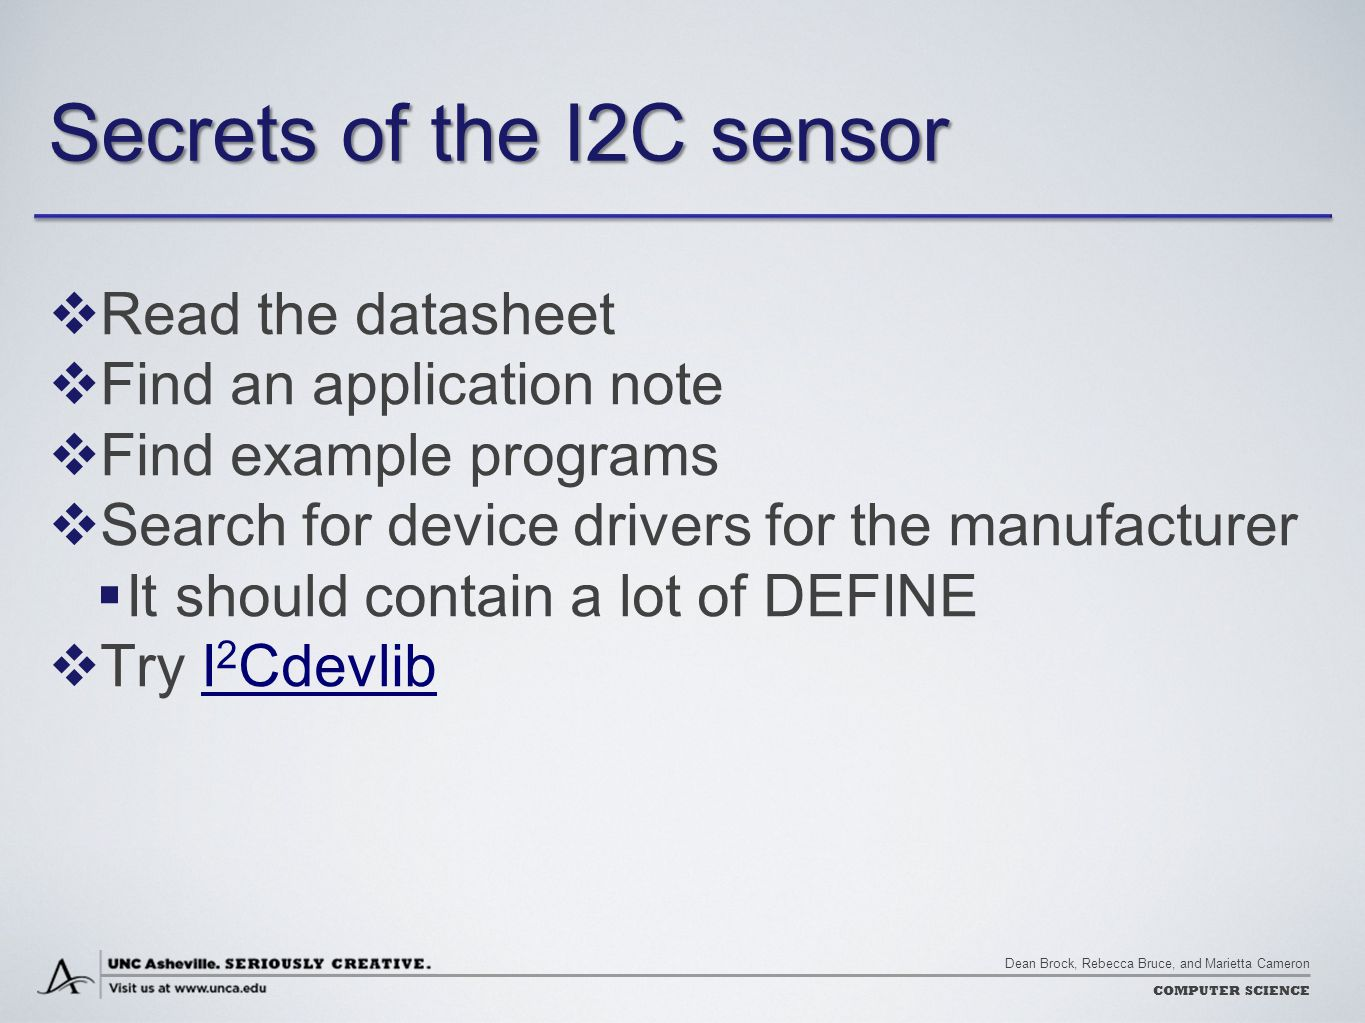 Dean Brock, Rebecca Bruce, and Marietta Cameron COMPUTER SCIENCE Secrets of the I2C sensor  Read the datasheet  Find an application note  Find example programs  Search for device drivers for the manufacturer  It should contain a lot of DEFINE  Try I 2 CdevlibI 2 Cdevlib